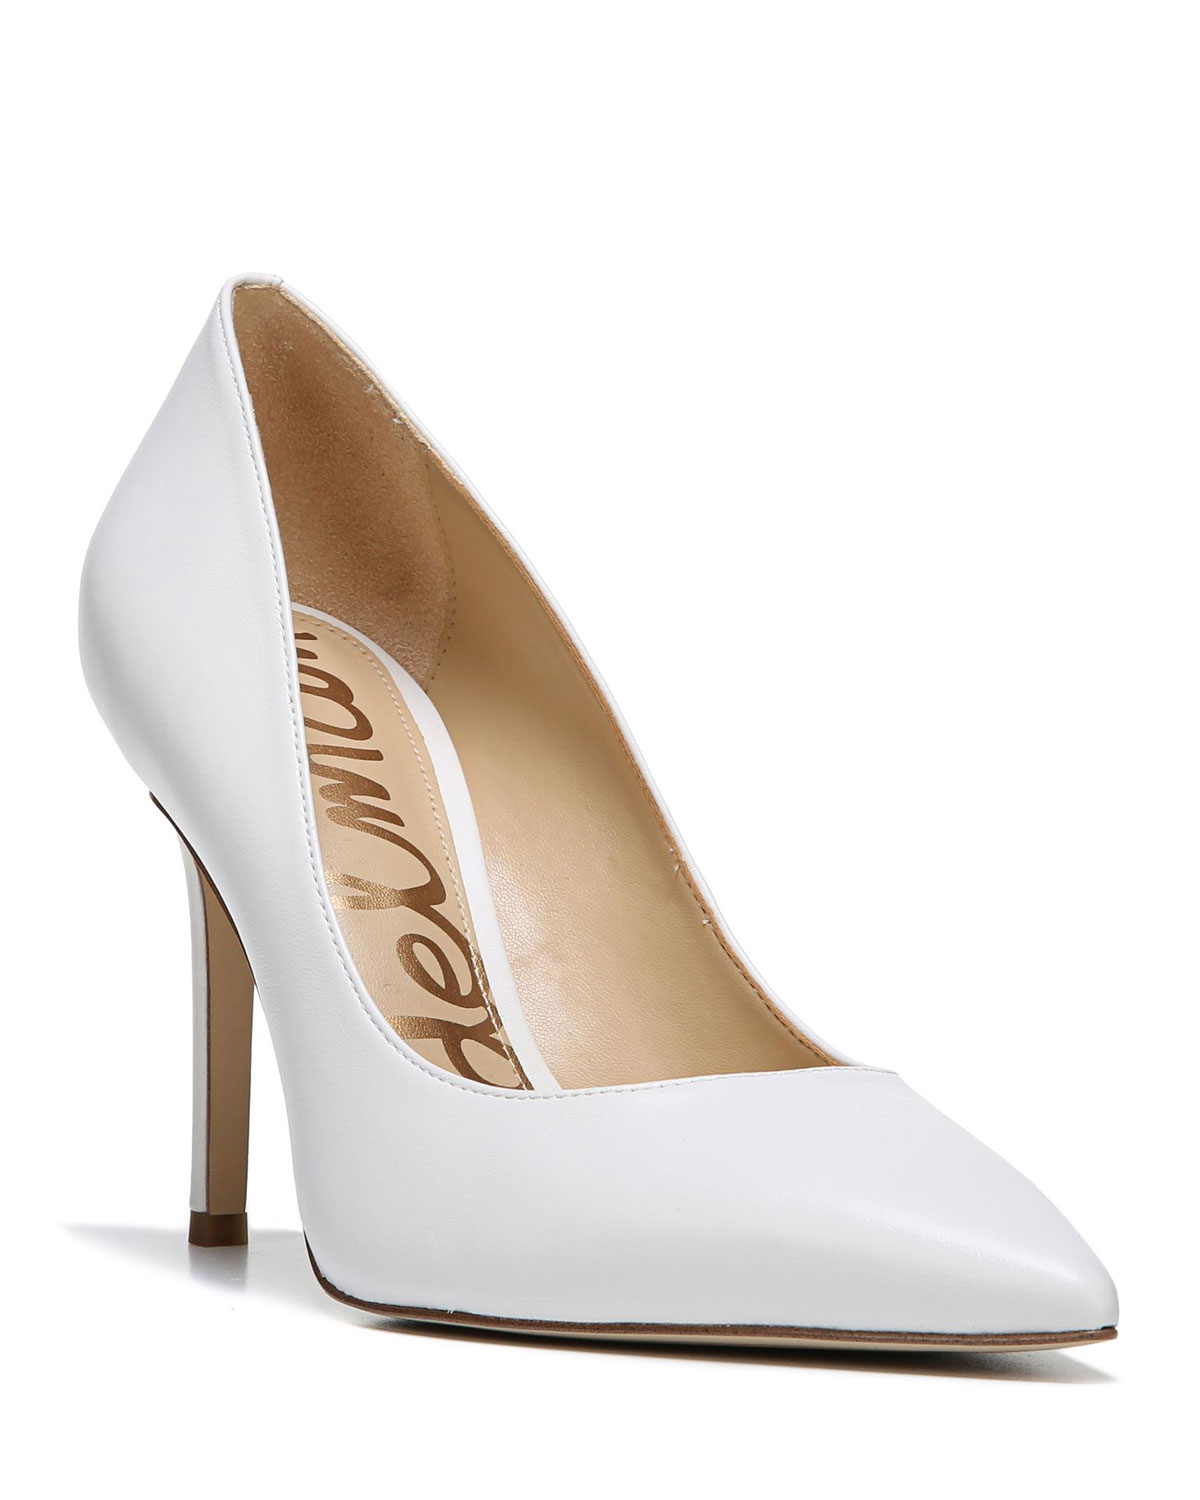 ea0925c83 Sam Edelman Hazel Napa Leather Pointed-Toe Pumps